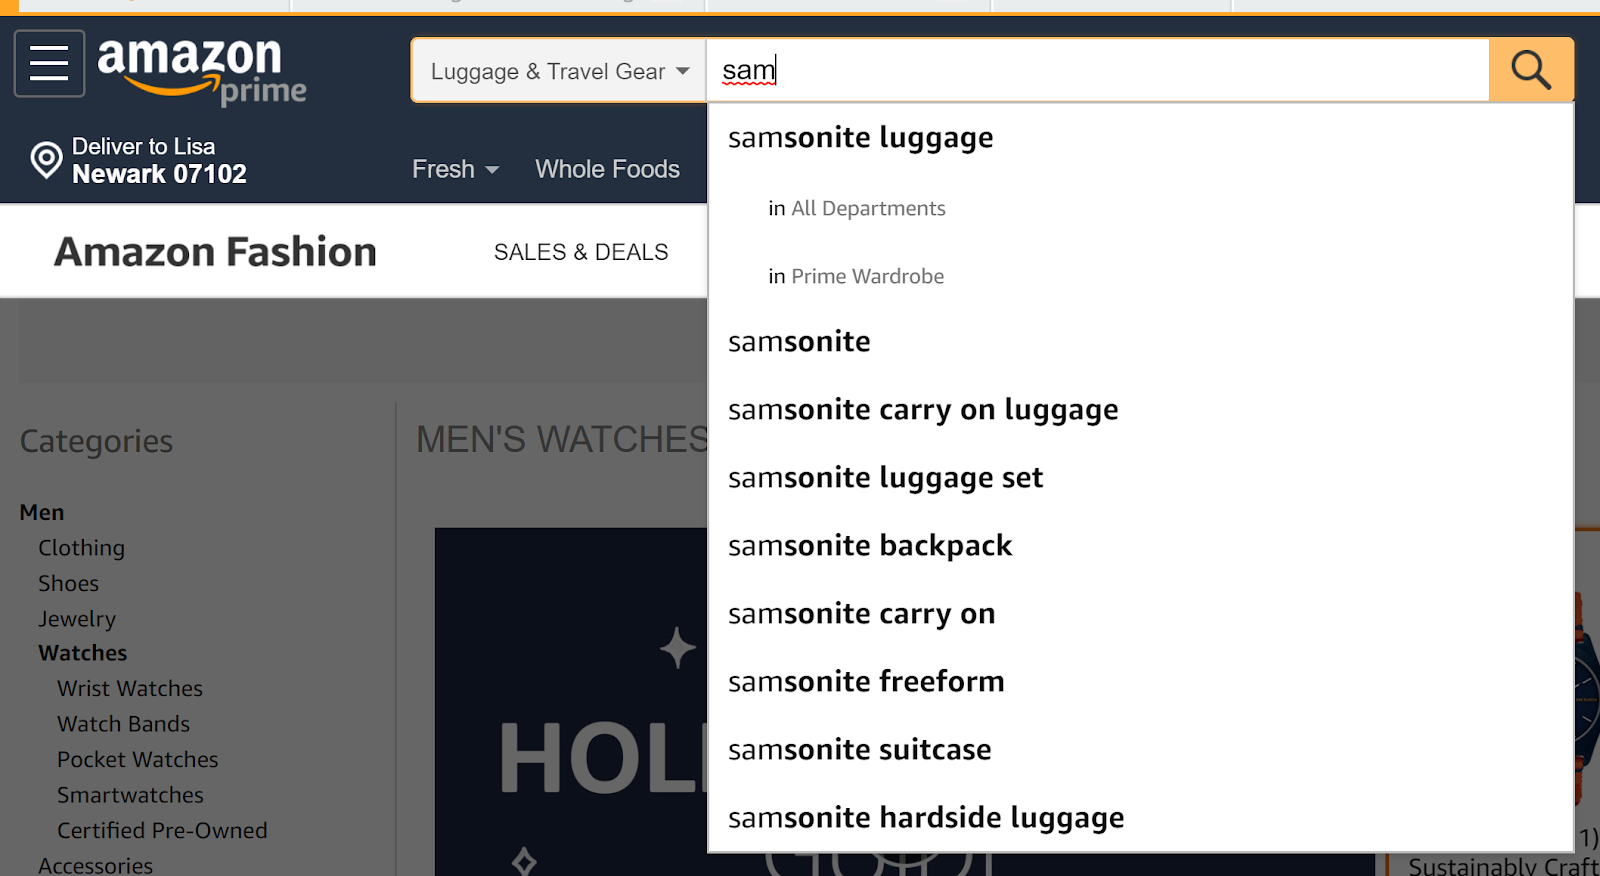 Amazon's eCommerce keywords.